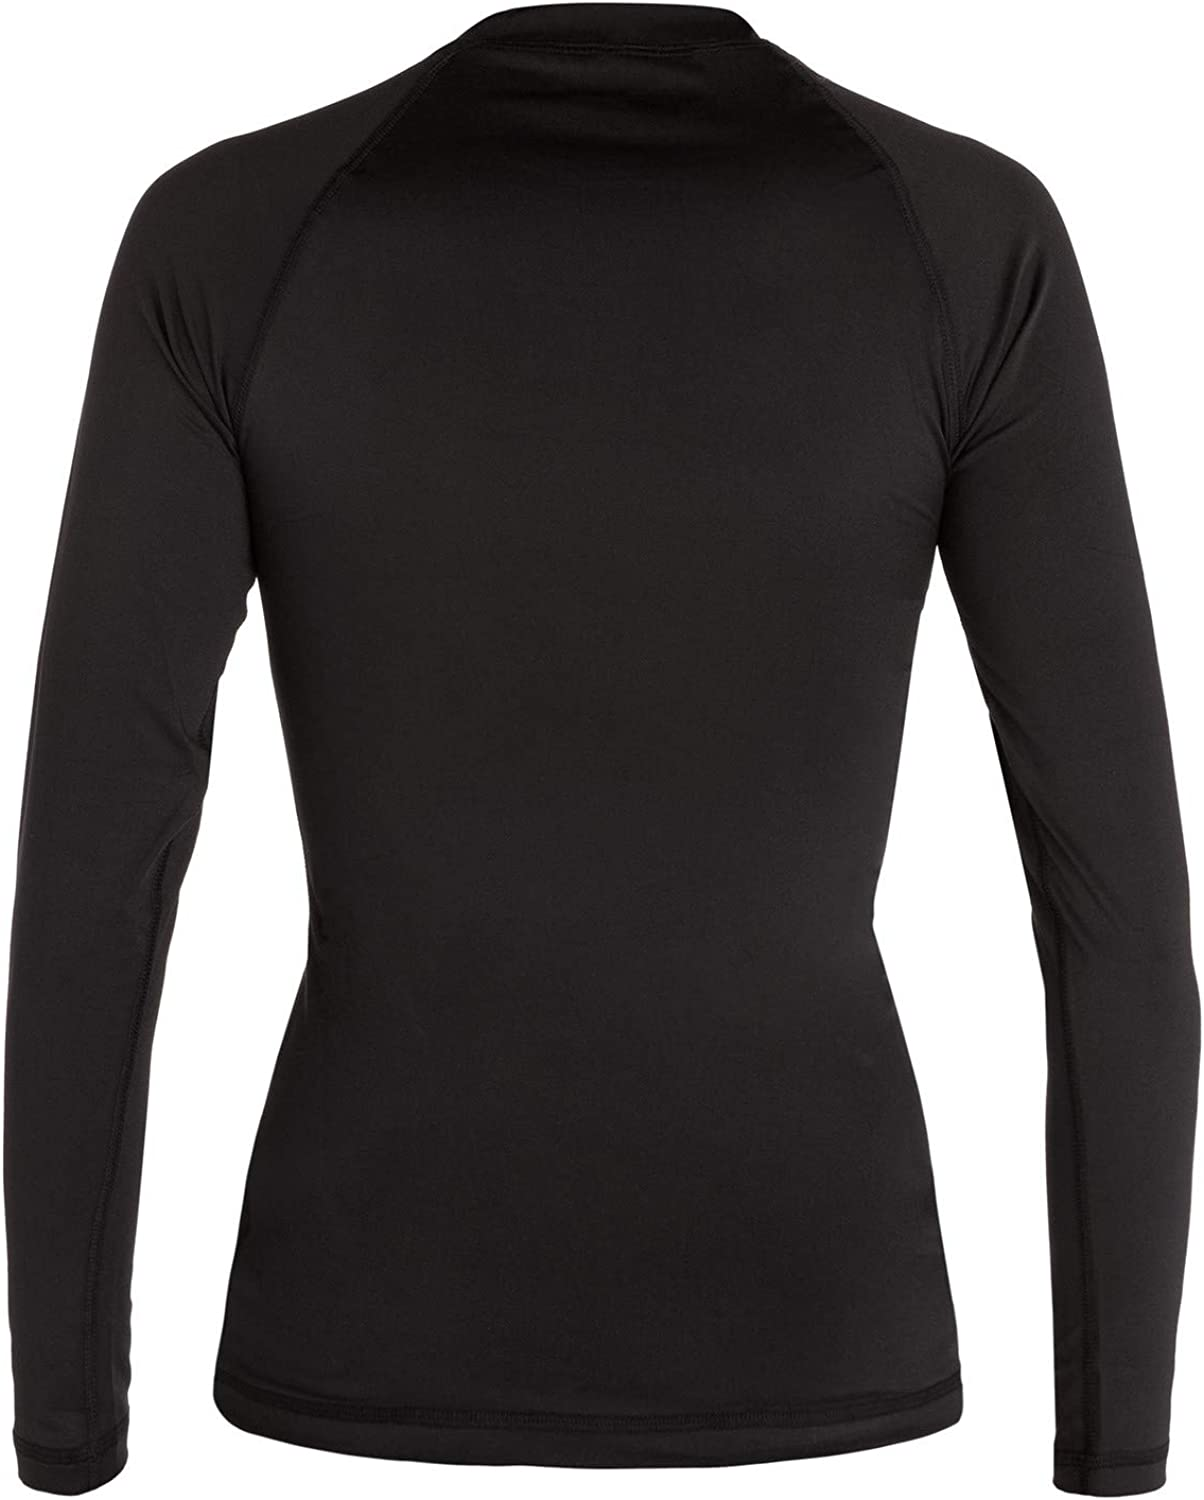 WLY6MW Rip Curl Sunny Rays Relaxed S//SL Lycra Mujer Peach Mujer